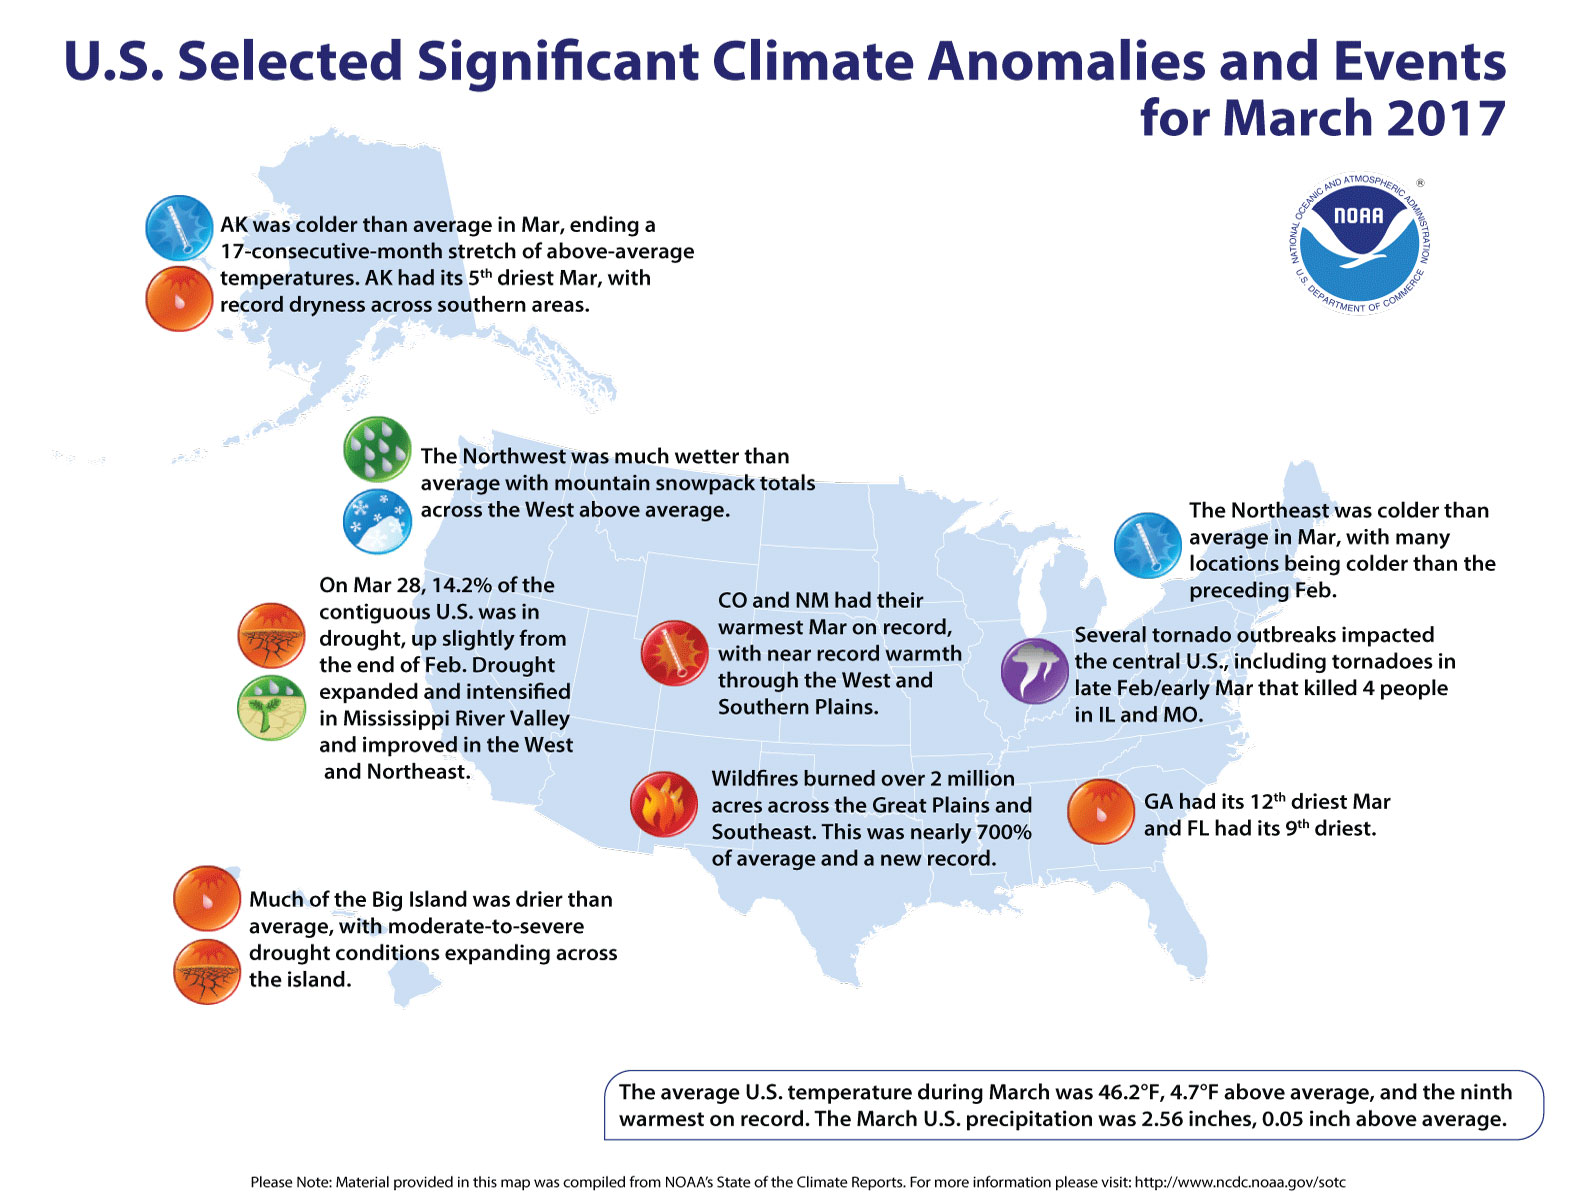 Map of U.S. selected significant climate anomalies and events for March 2017